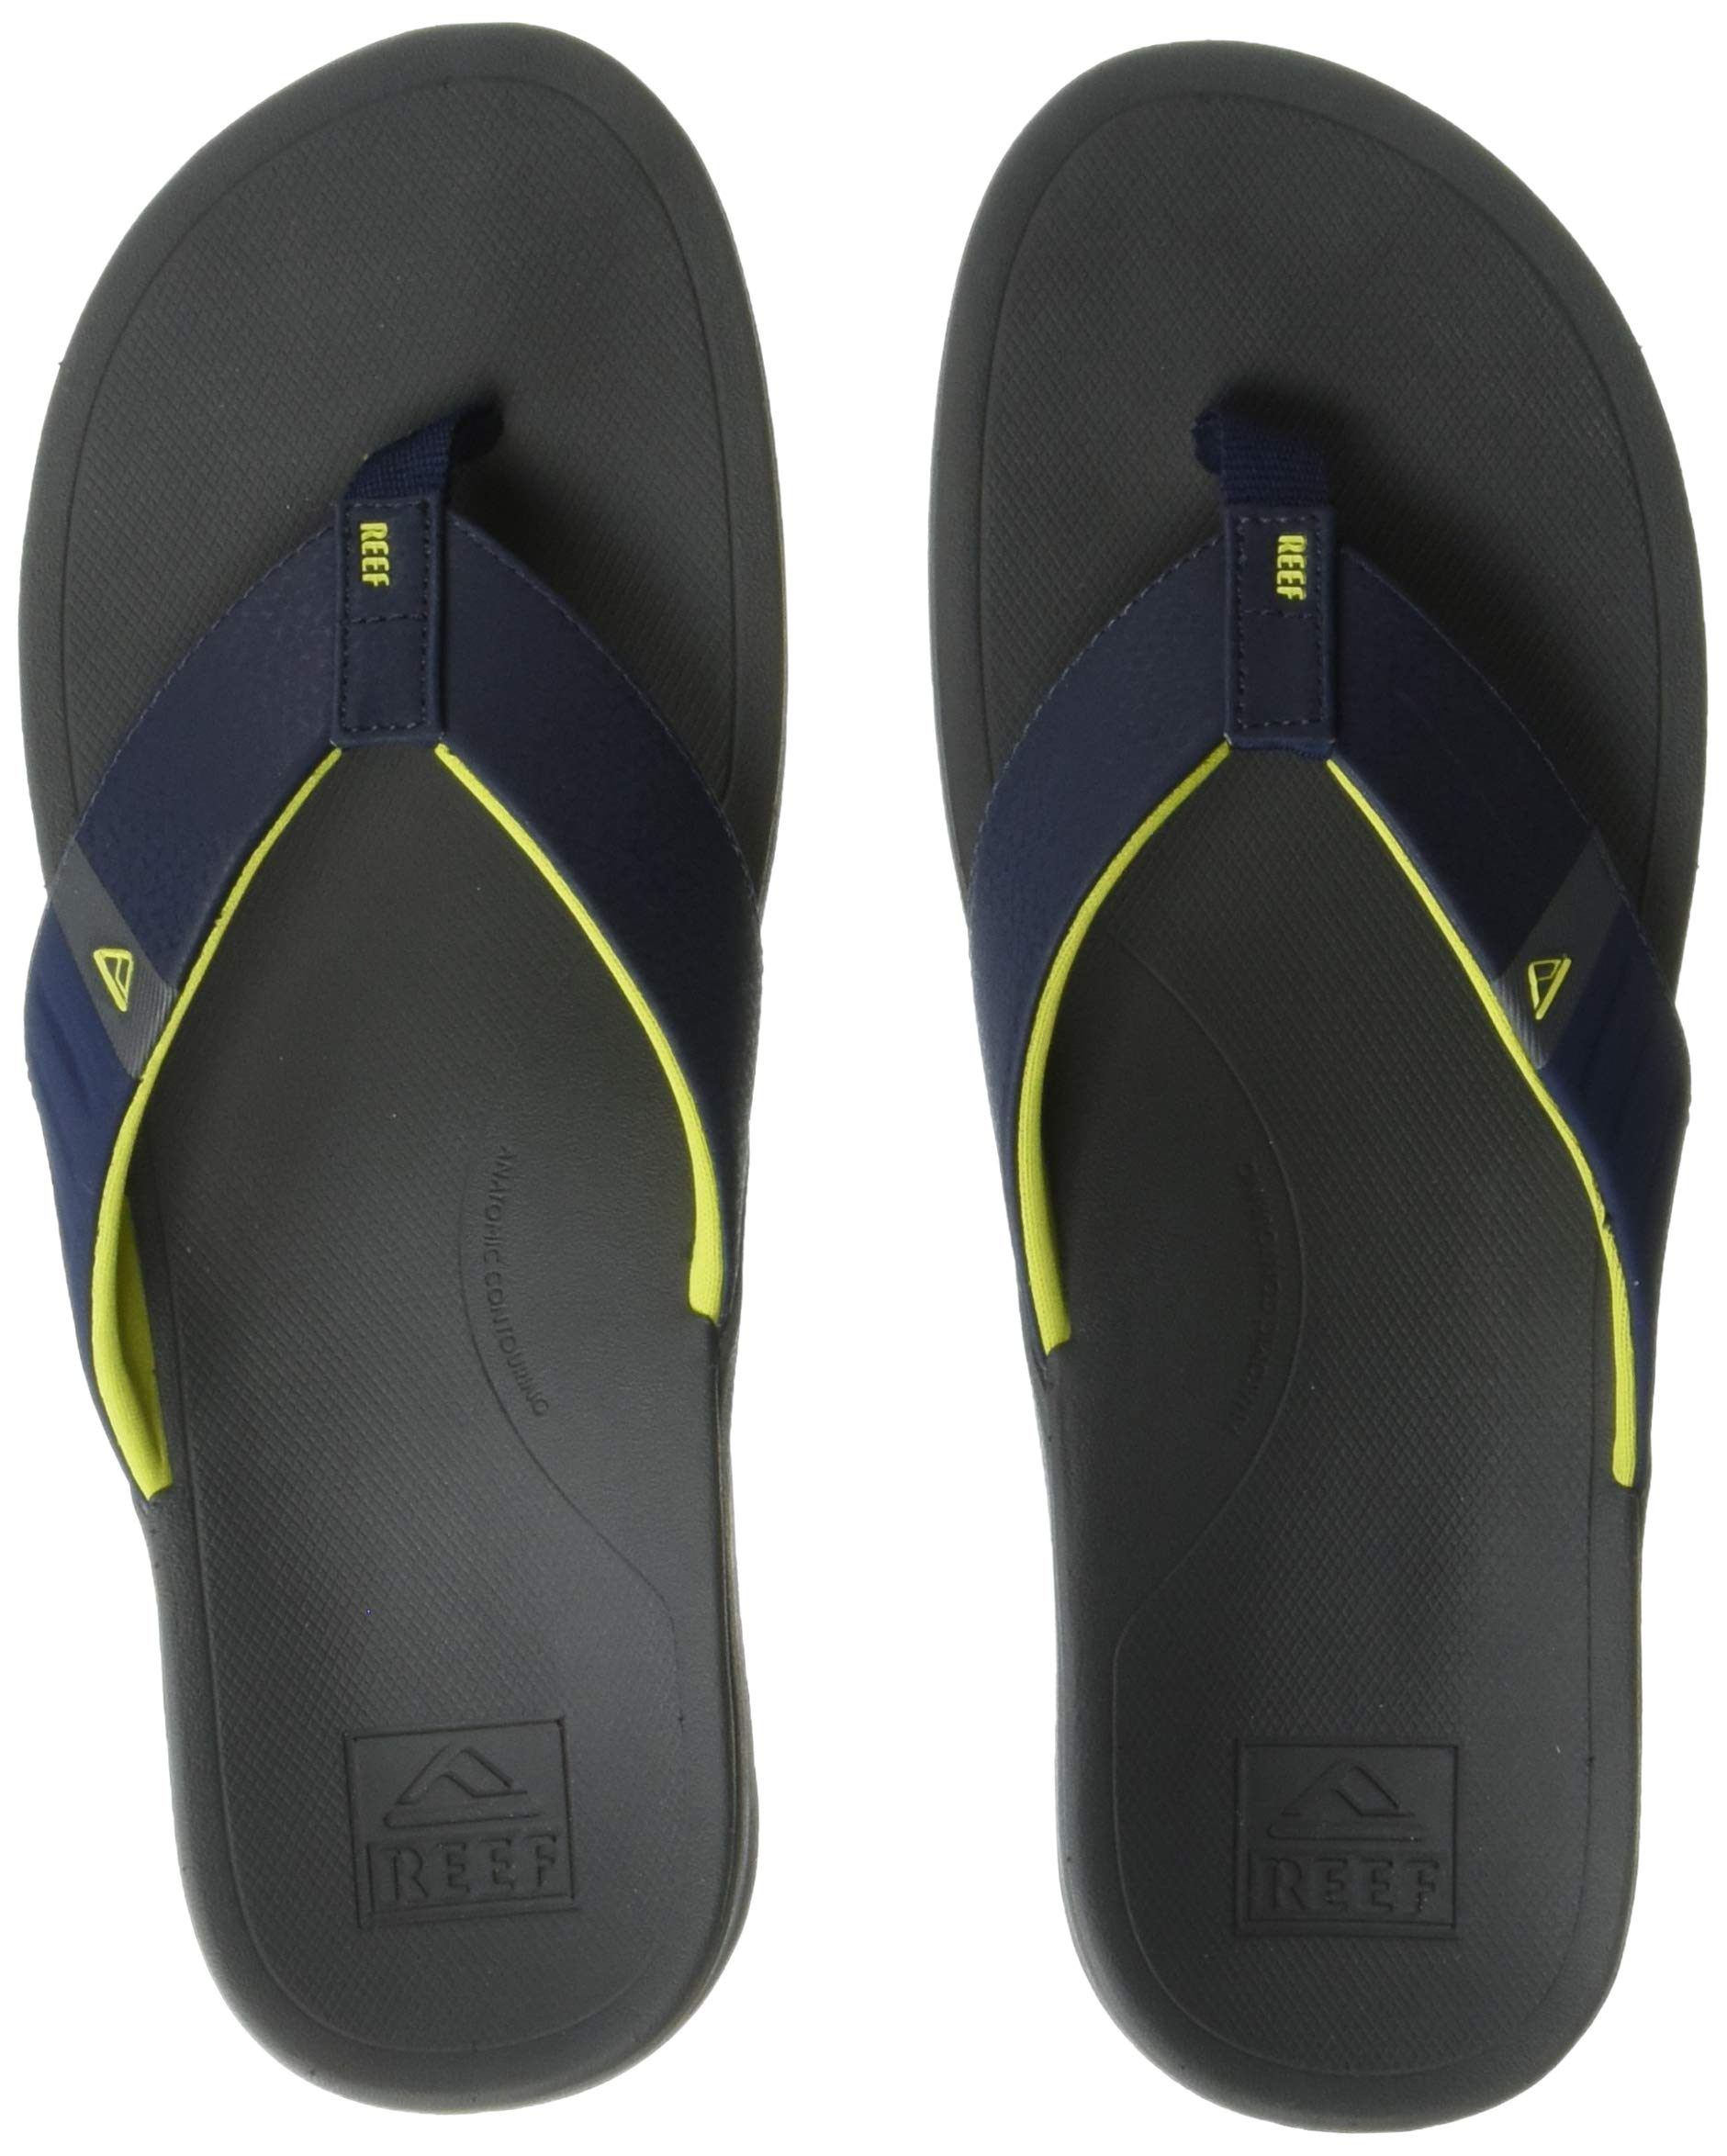 Reef Men's Ortho-Bounce Sport Sandal, Navy/Yellow, 070 M US by Reef (Image #1)